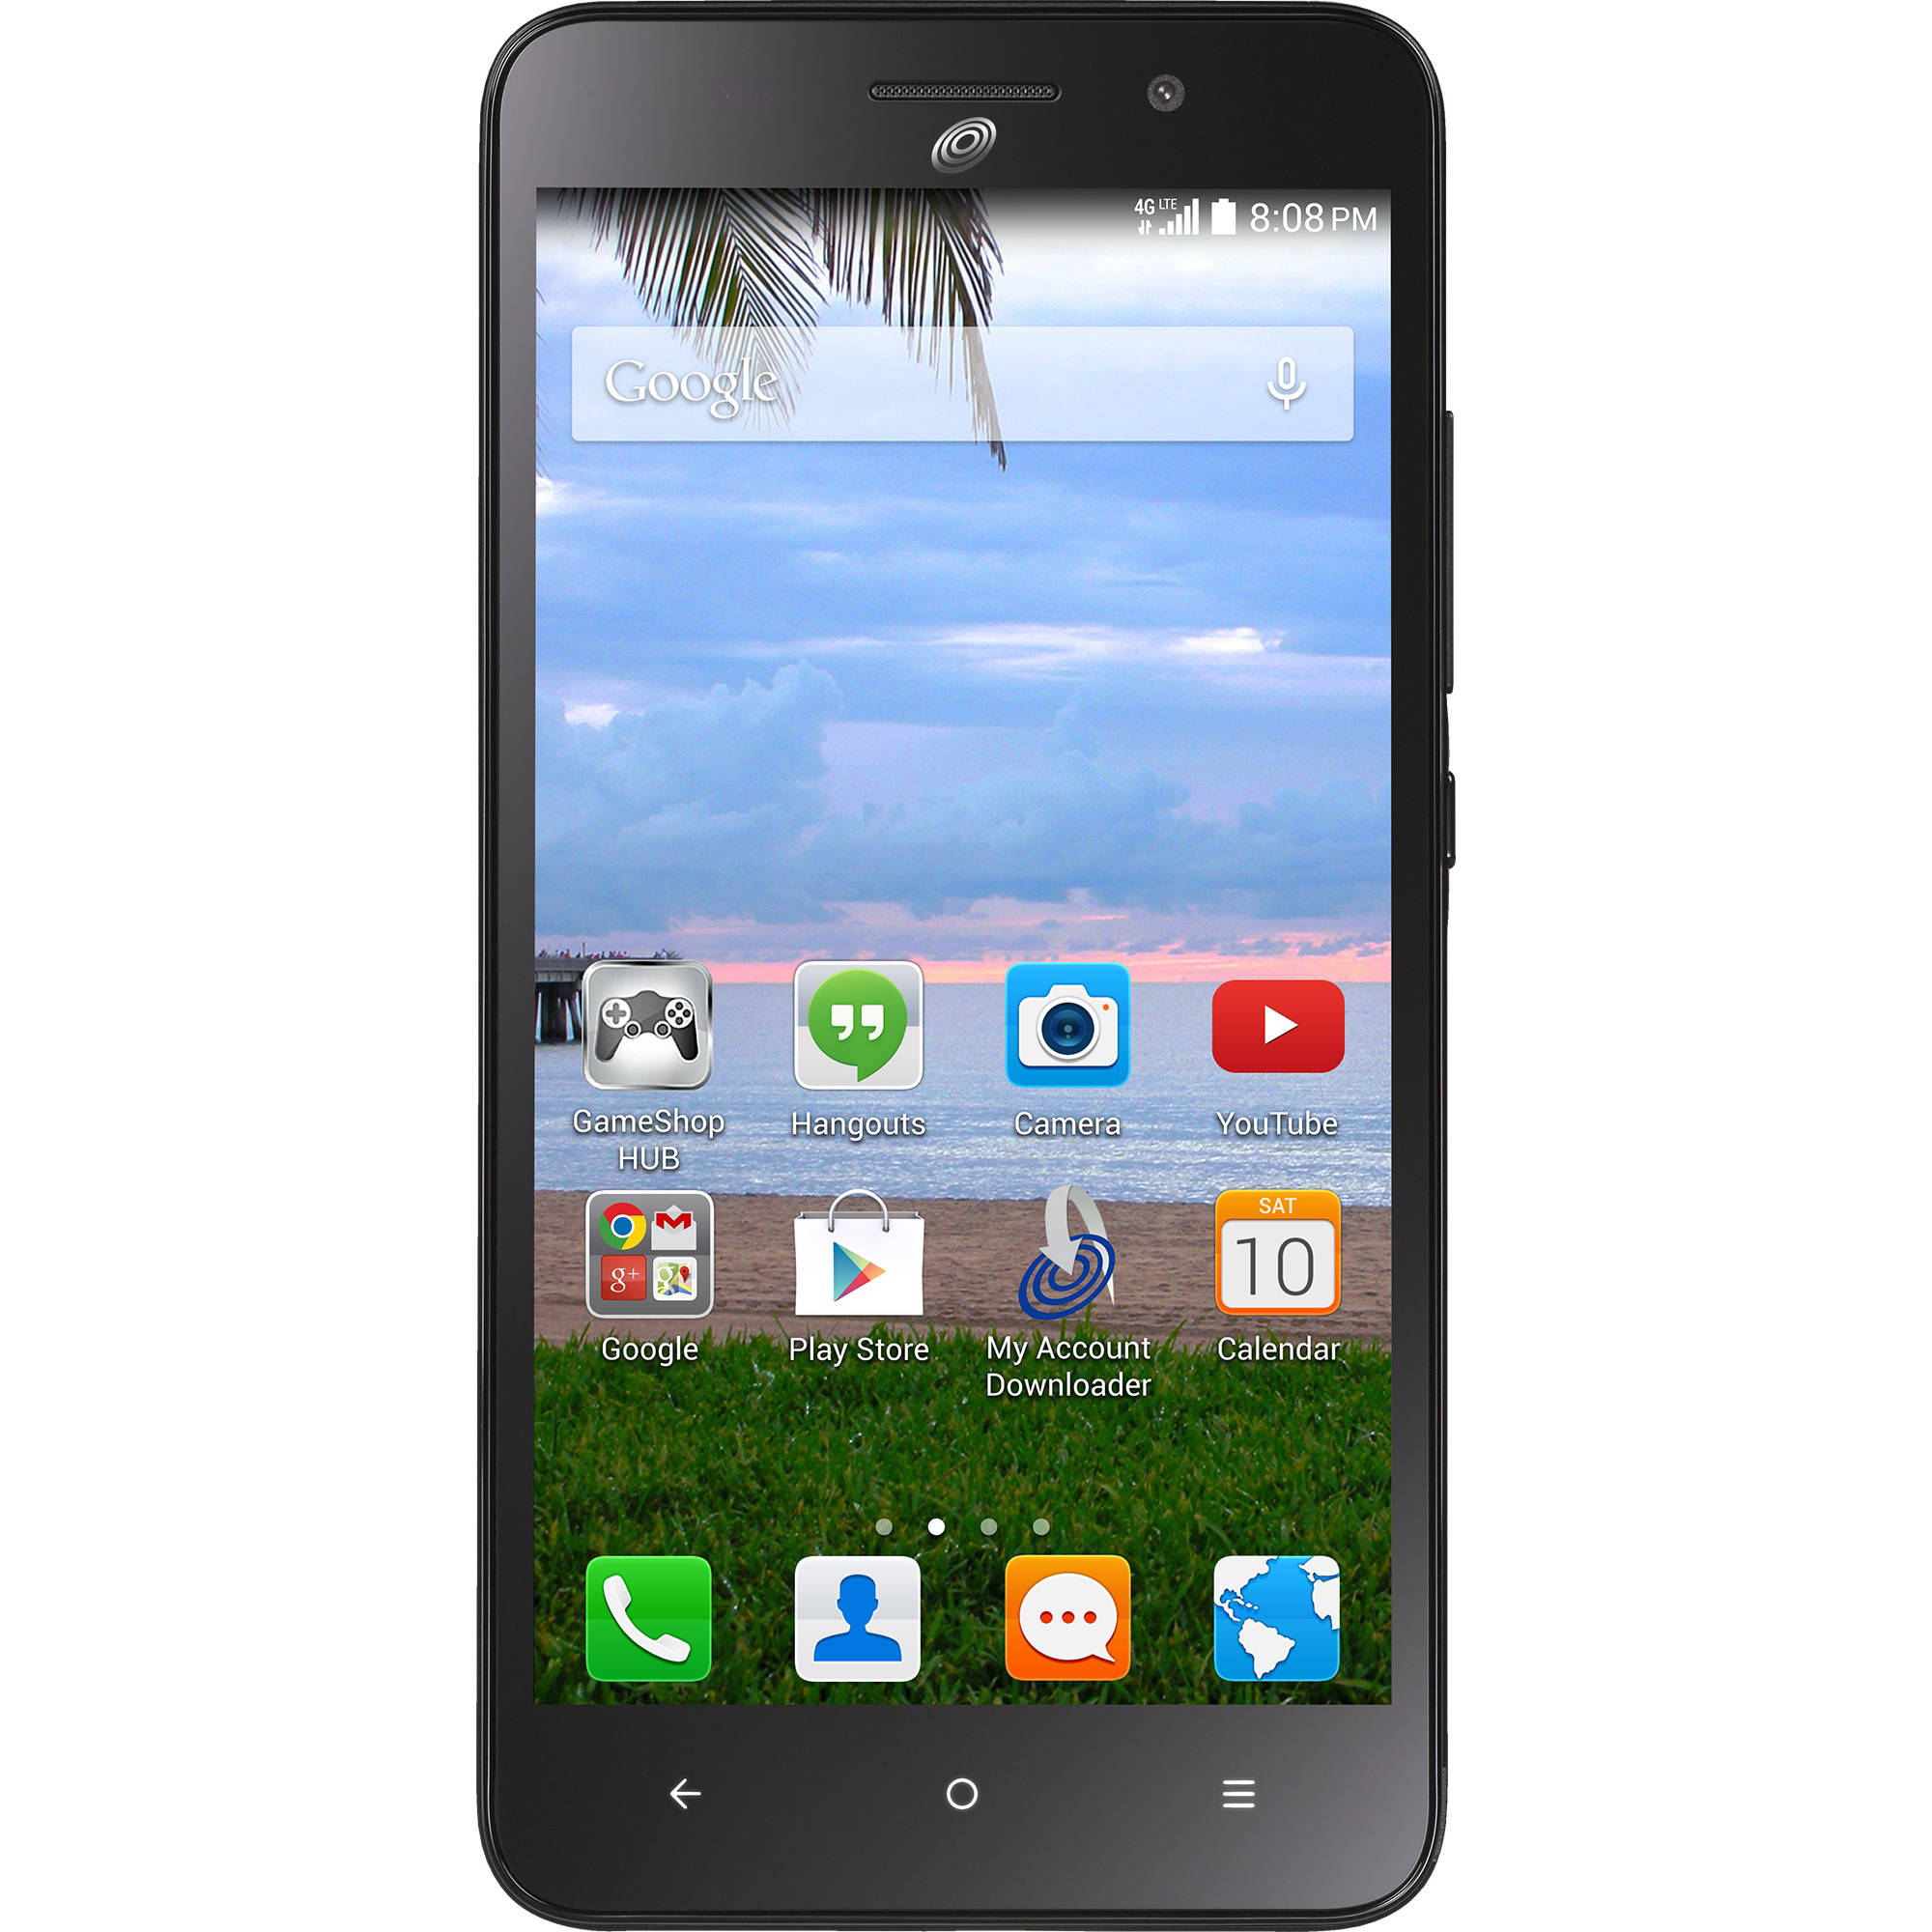 Refurbished Straight Talk Huawei Raven 4G LTE Prepaid Smartphone, Includes a $45/30 Day Plan